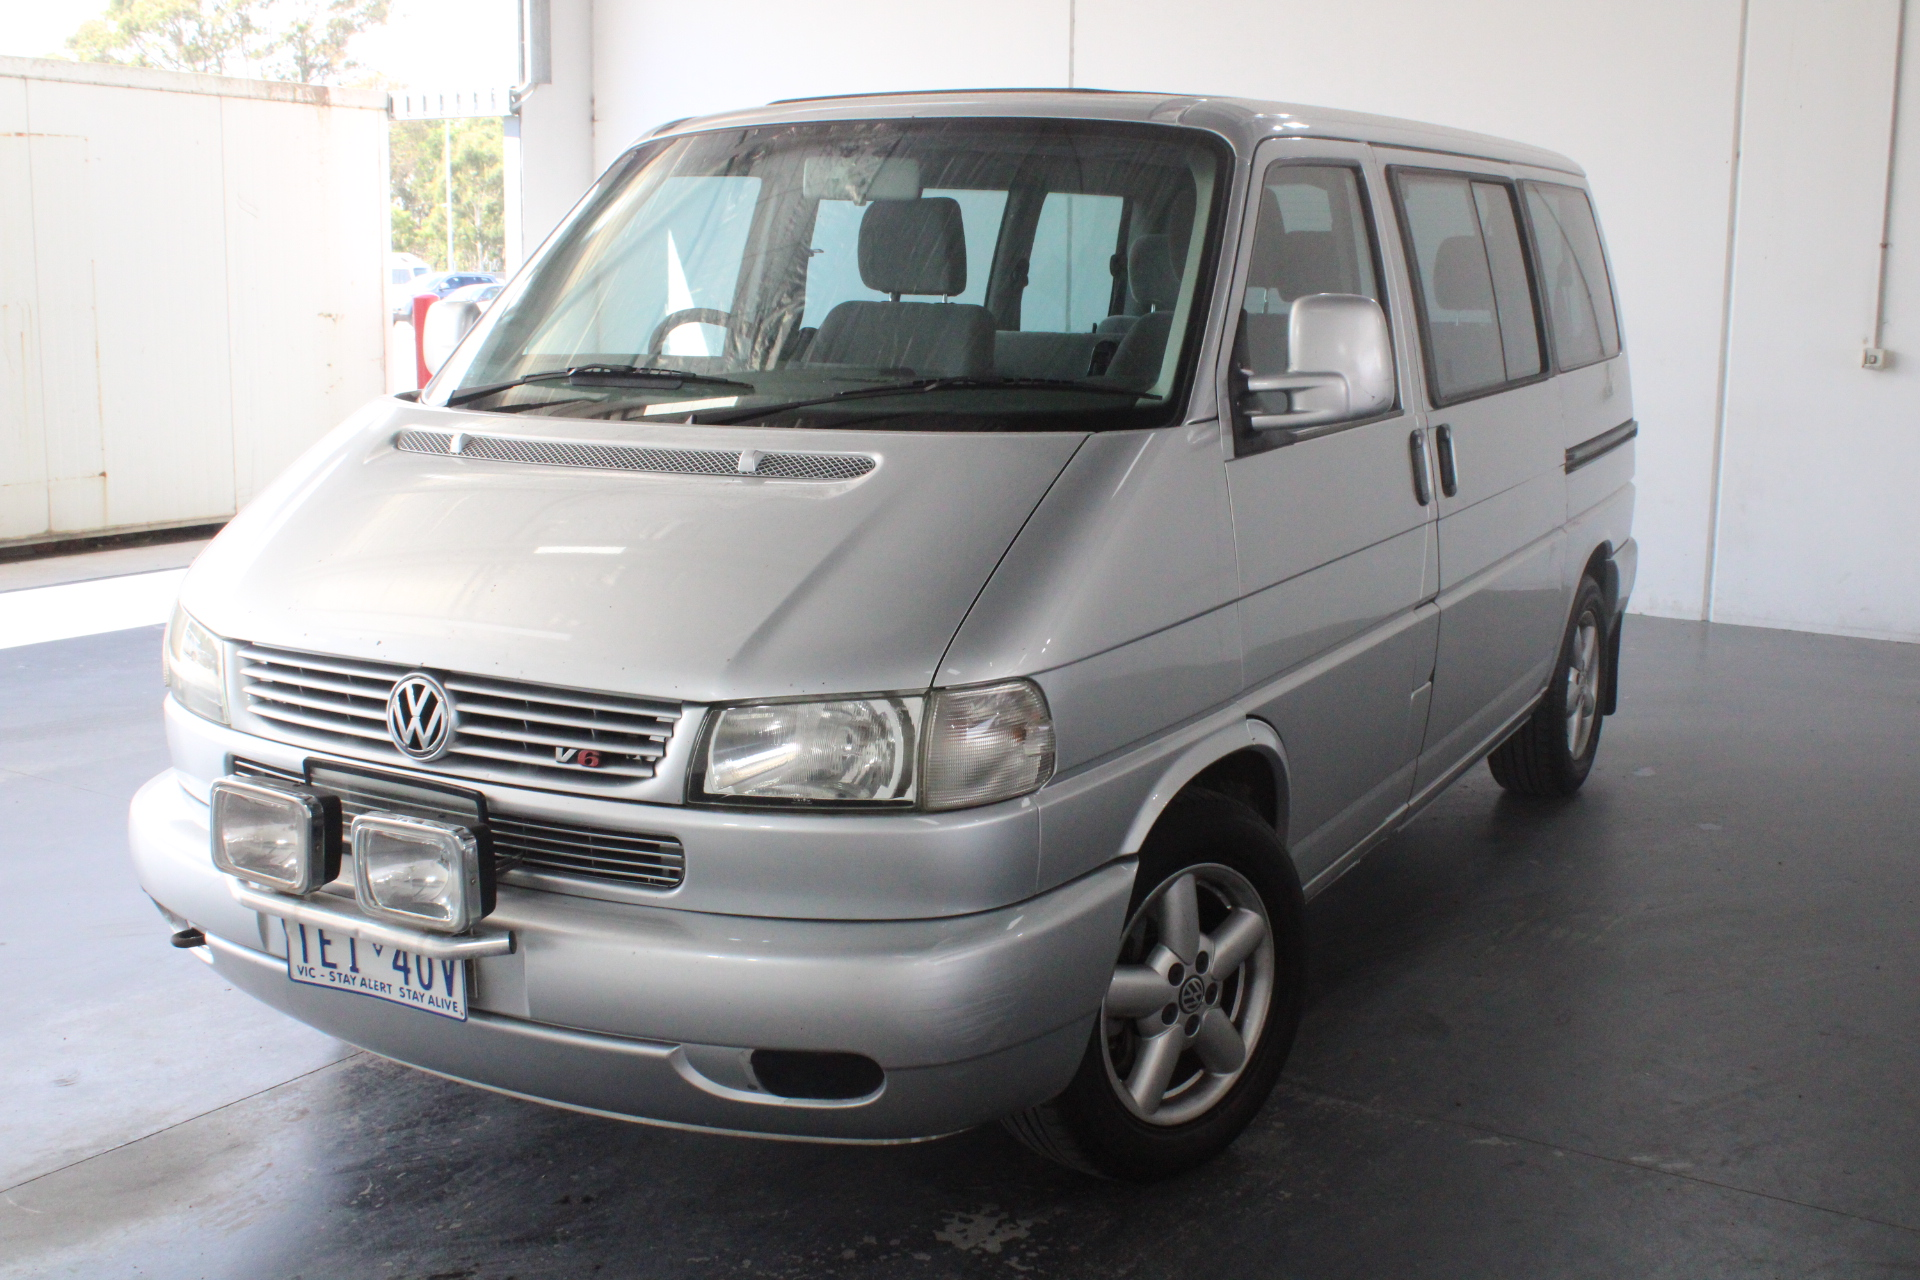 2004 Volkswagen Caravelle V6 T4 Automatic 8 Seats People Mover